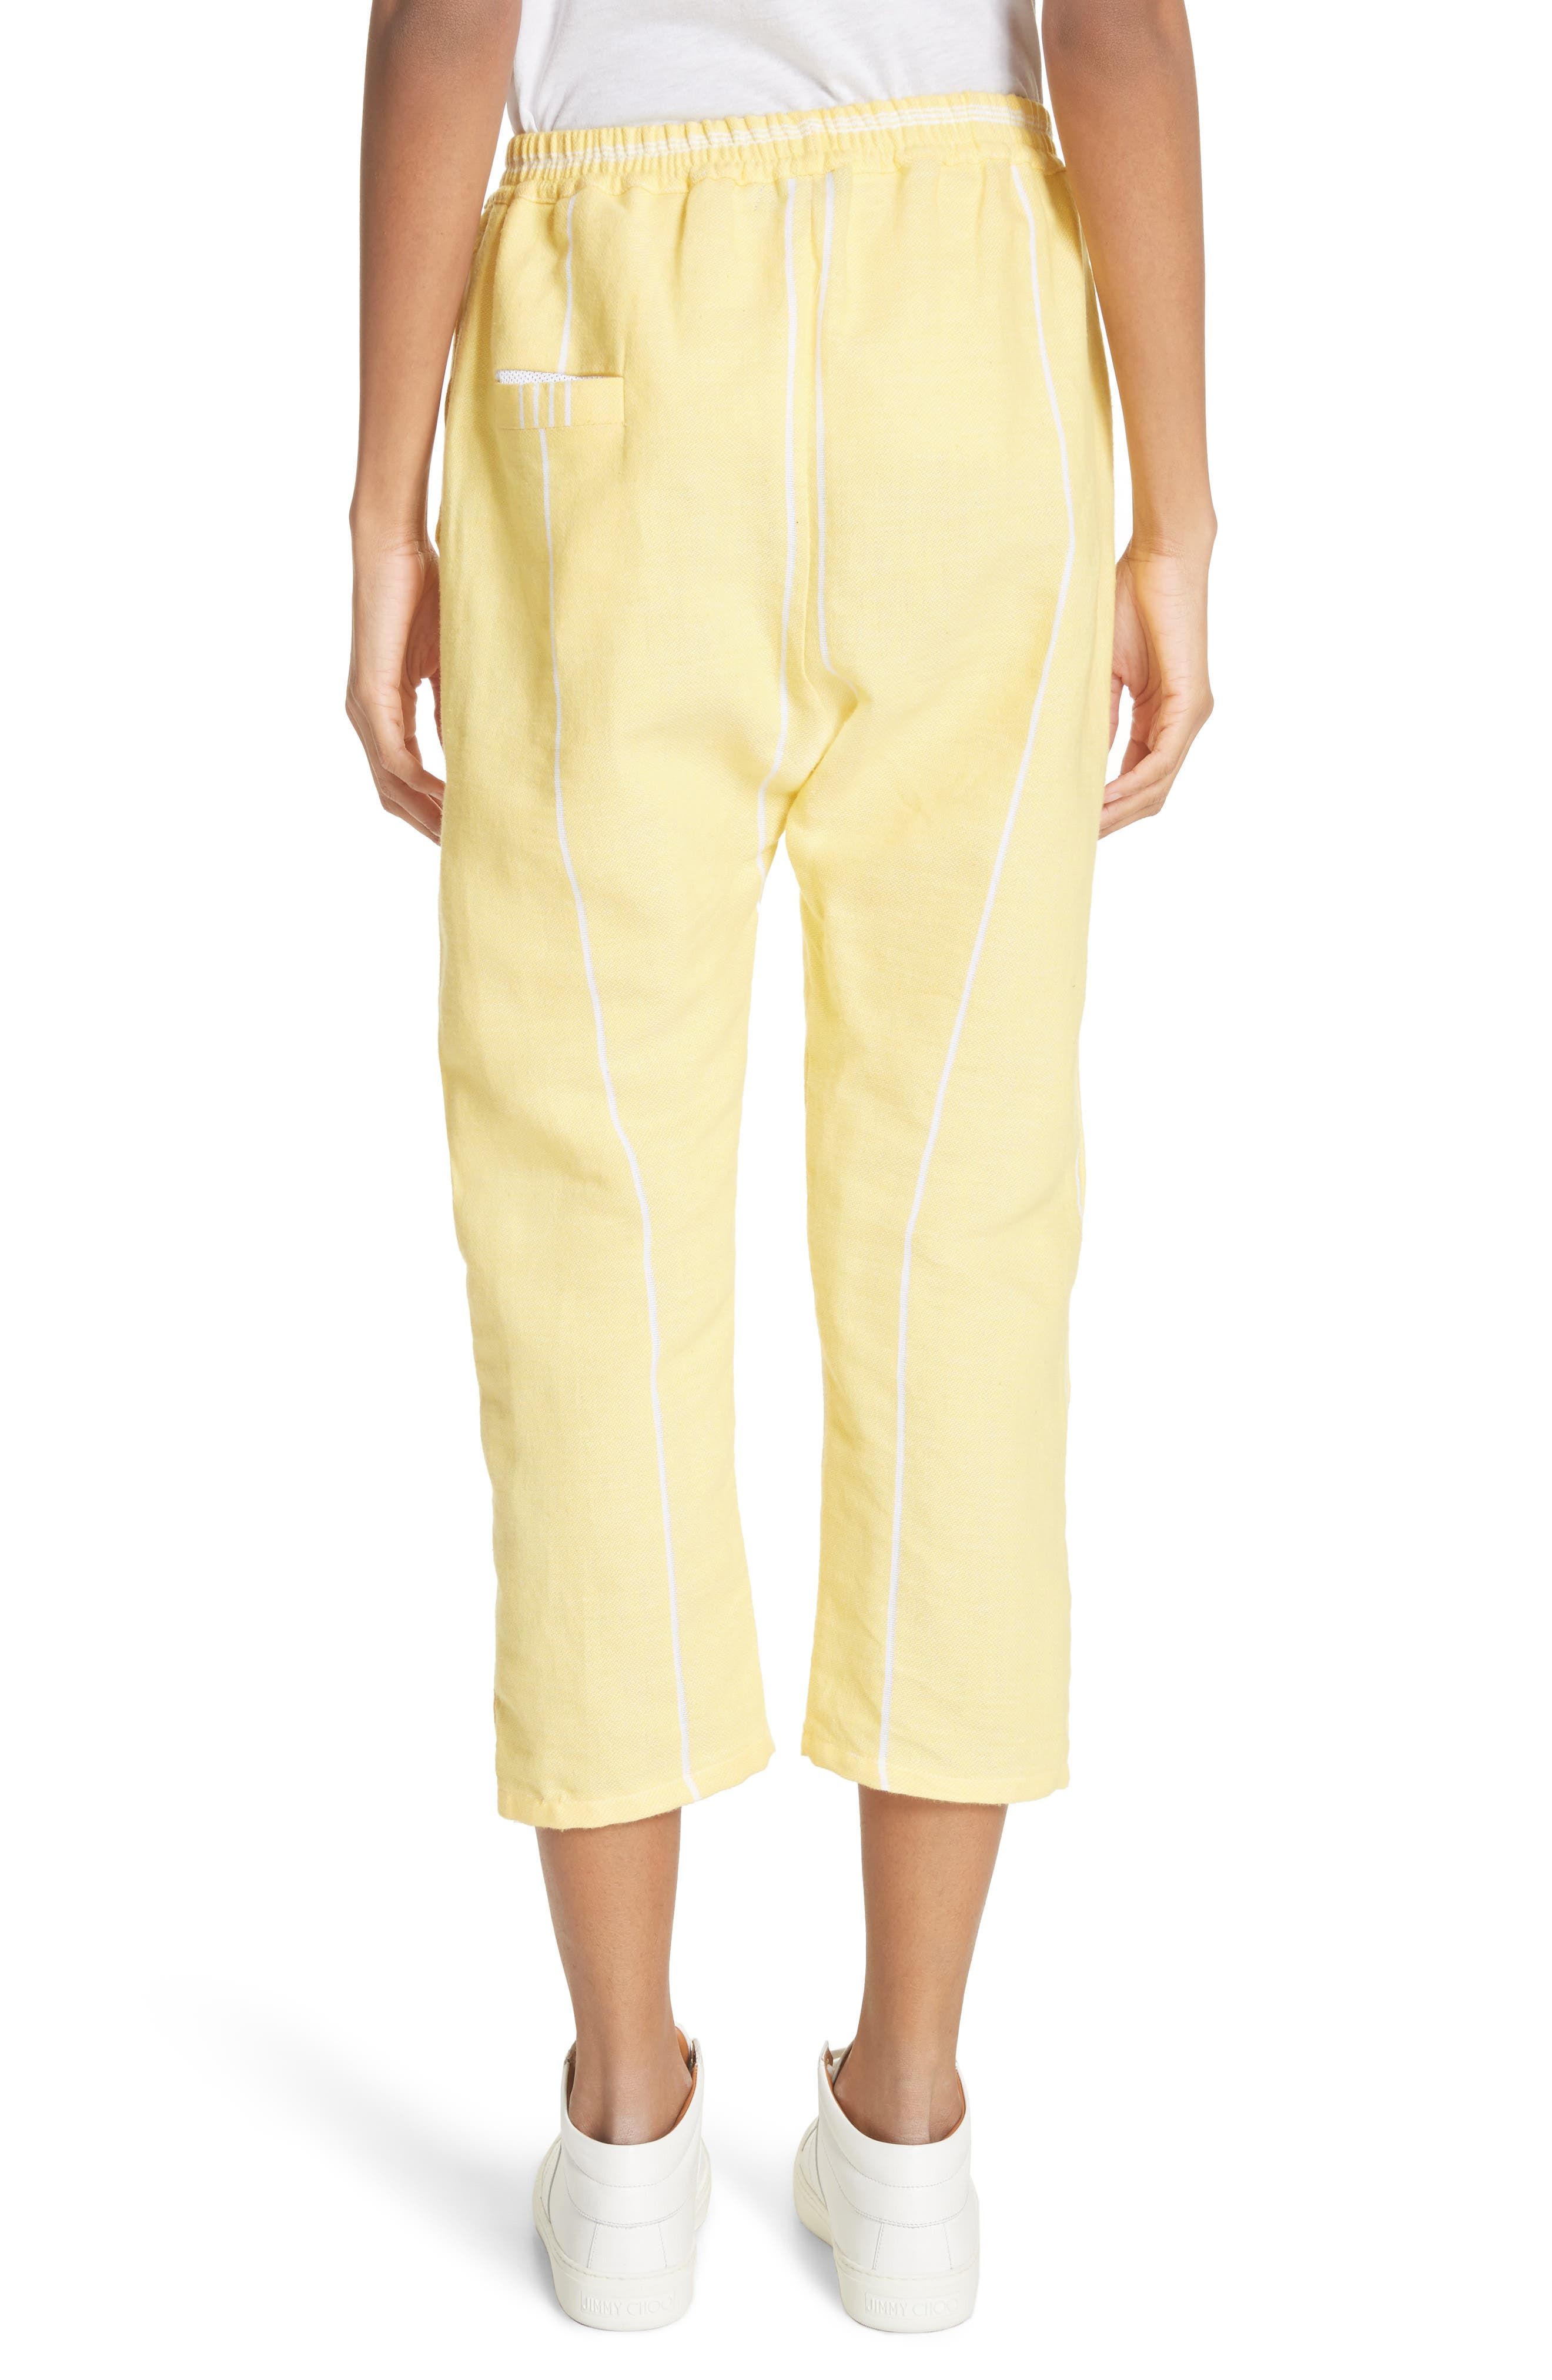 Stripe Cotton Beach Pants,                             Alternate thumbnail 2, color,                             Yellow